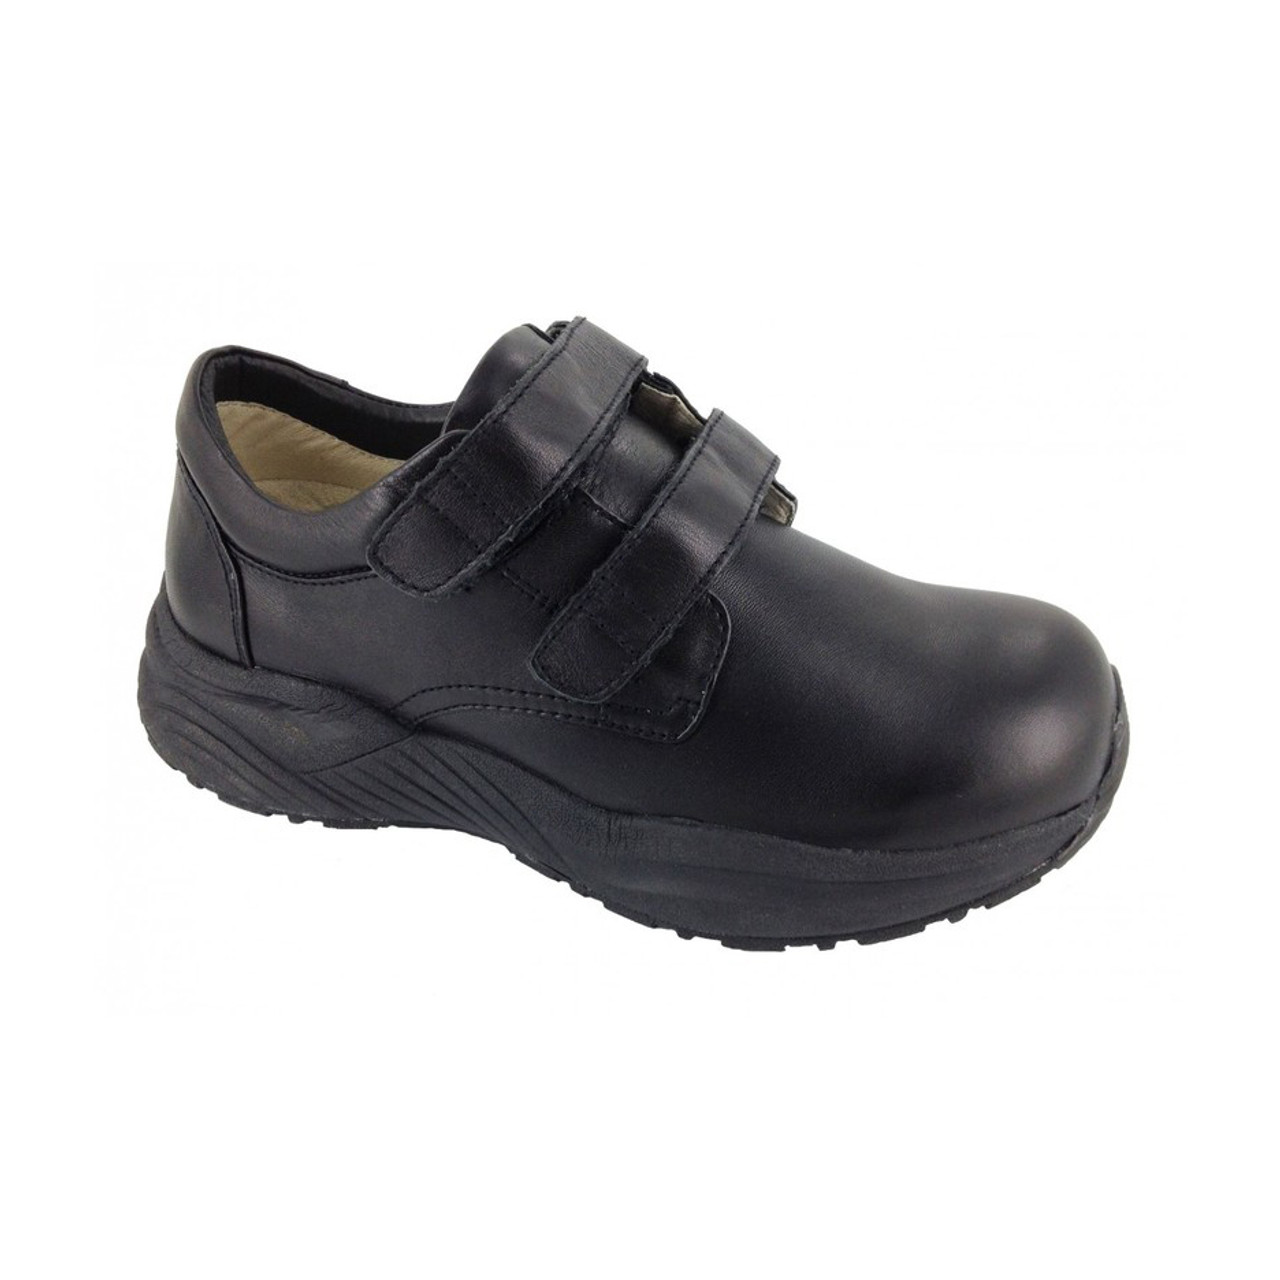 7d169bf551 Black Touch Closure Orthopedic Shoes For Work For Women